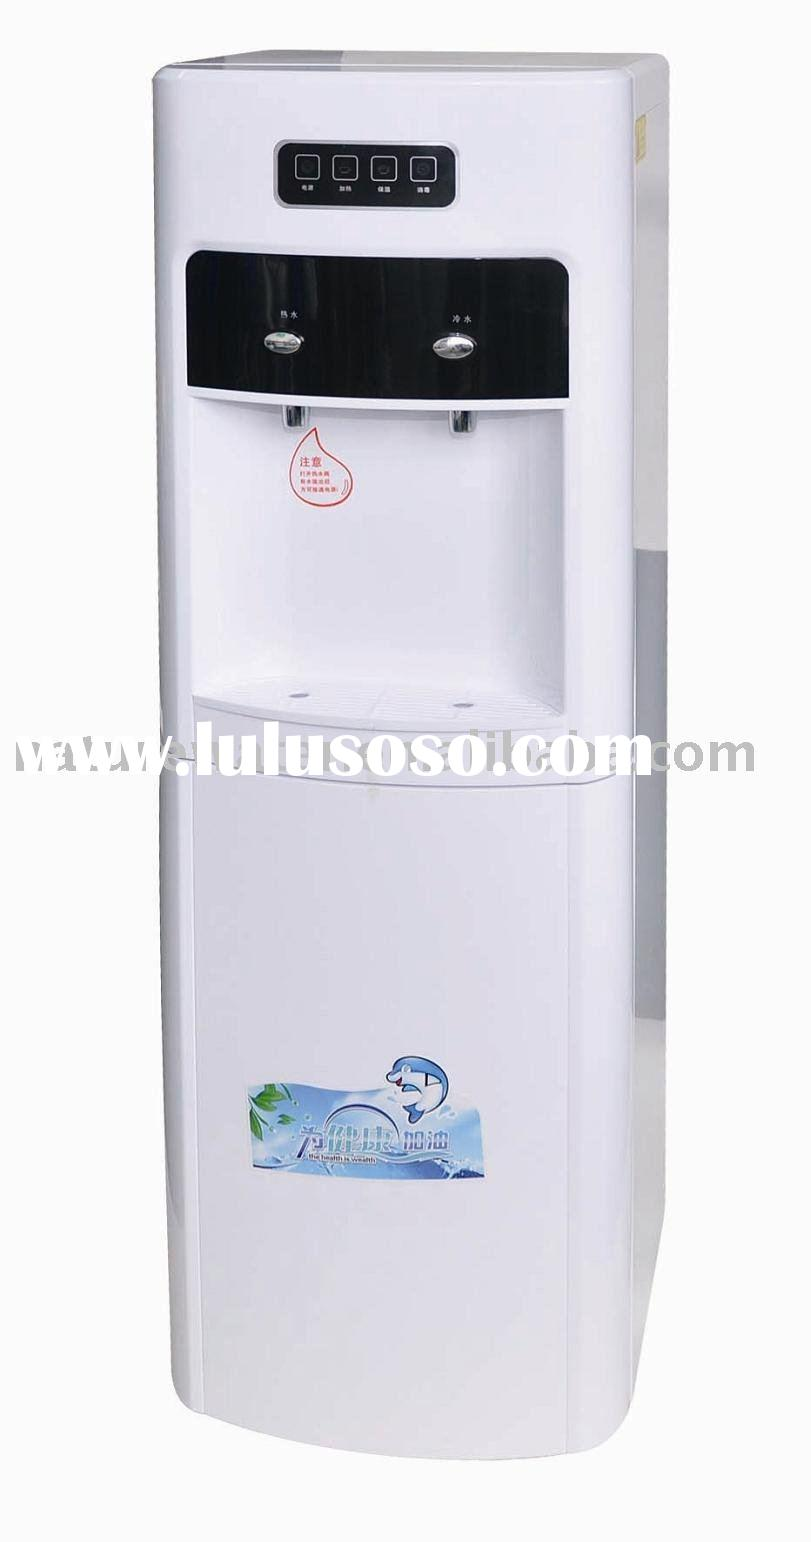 water filter dispenser /water purifier /mineral water pot / RO system water filter TDS